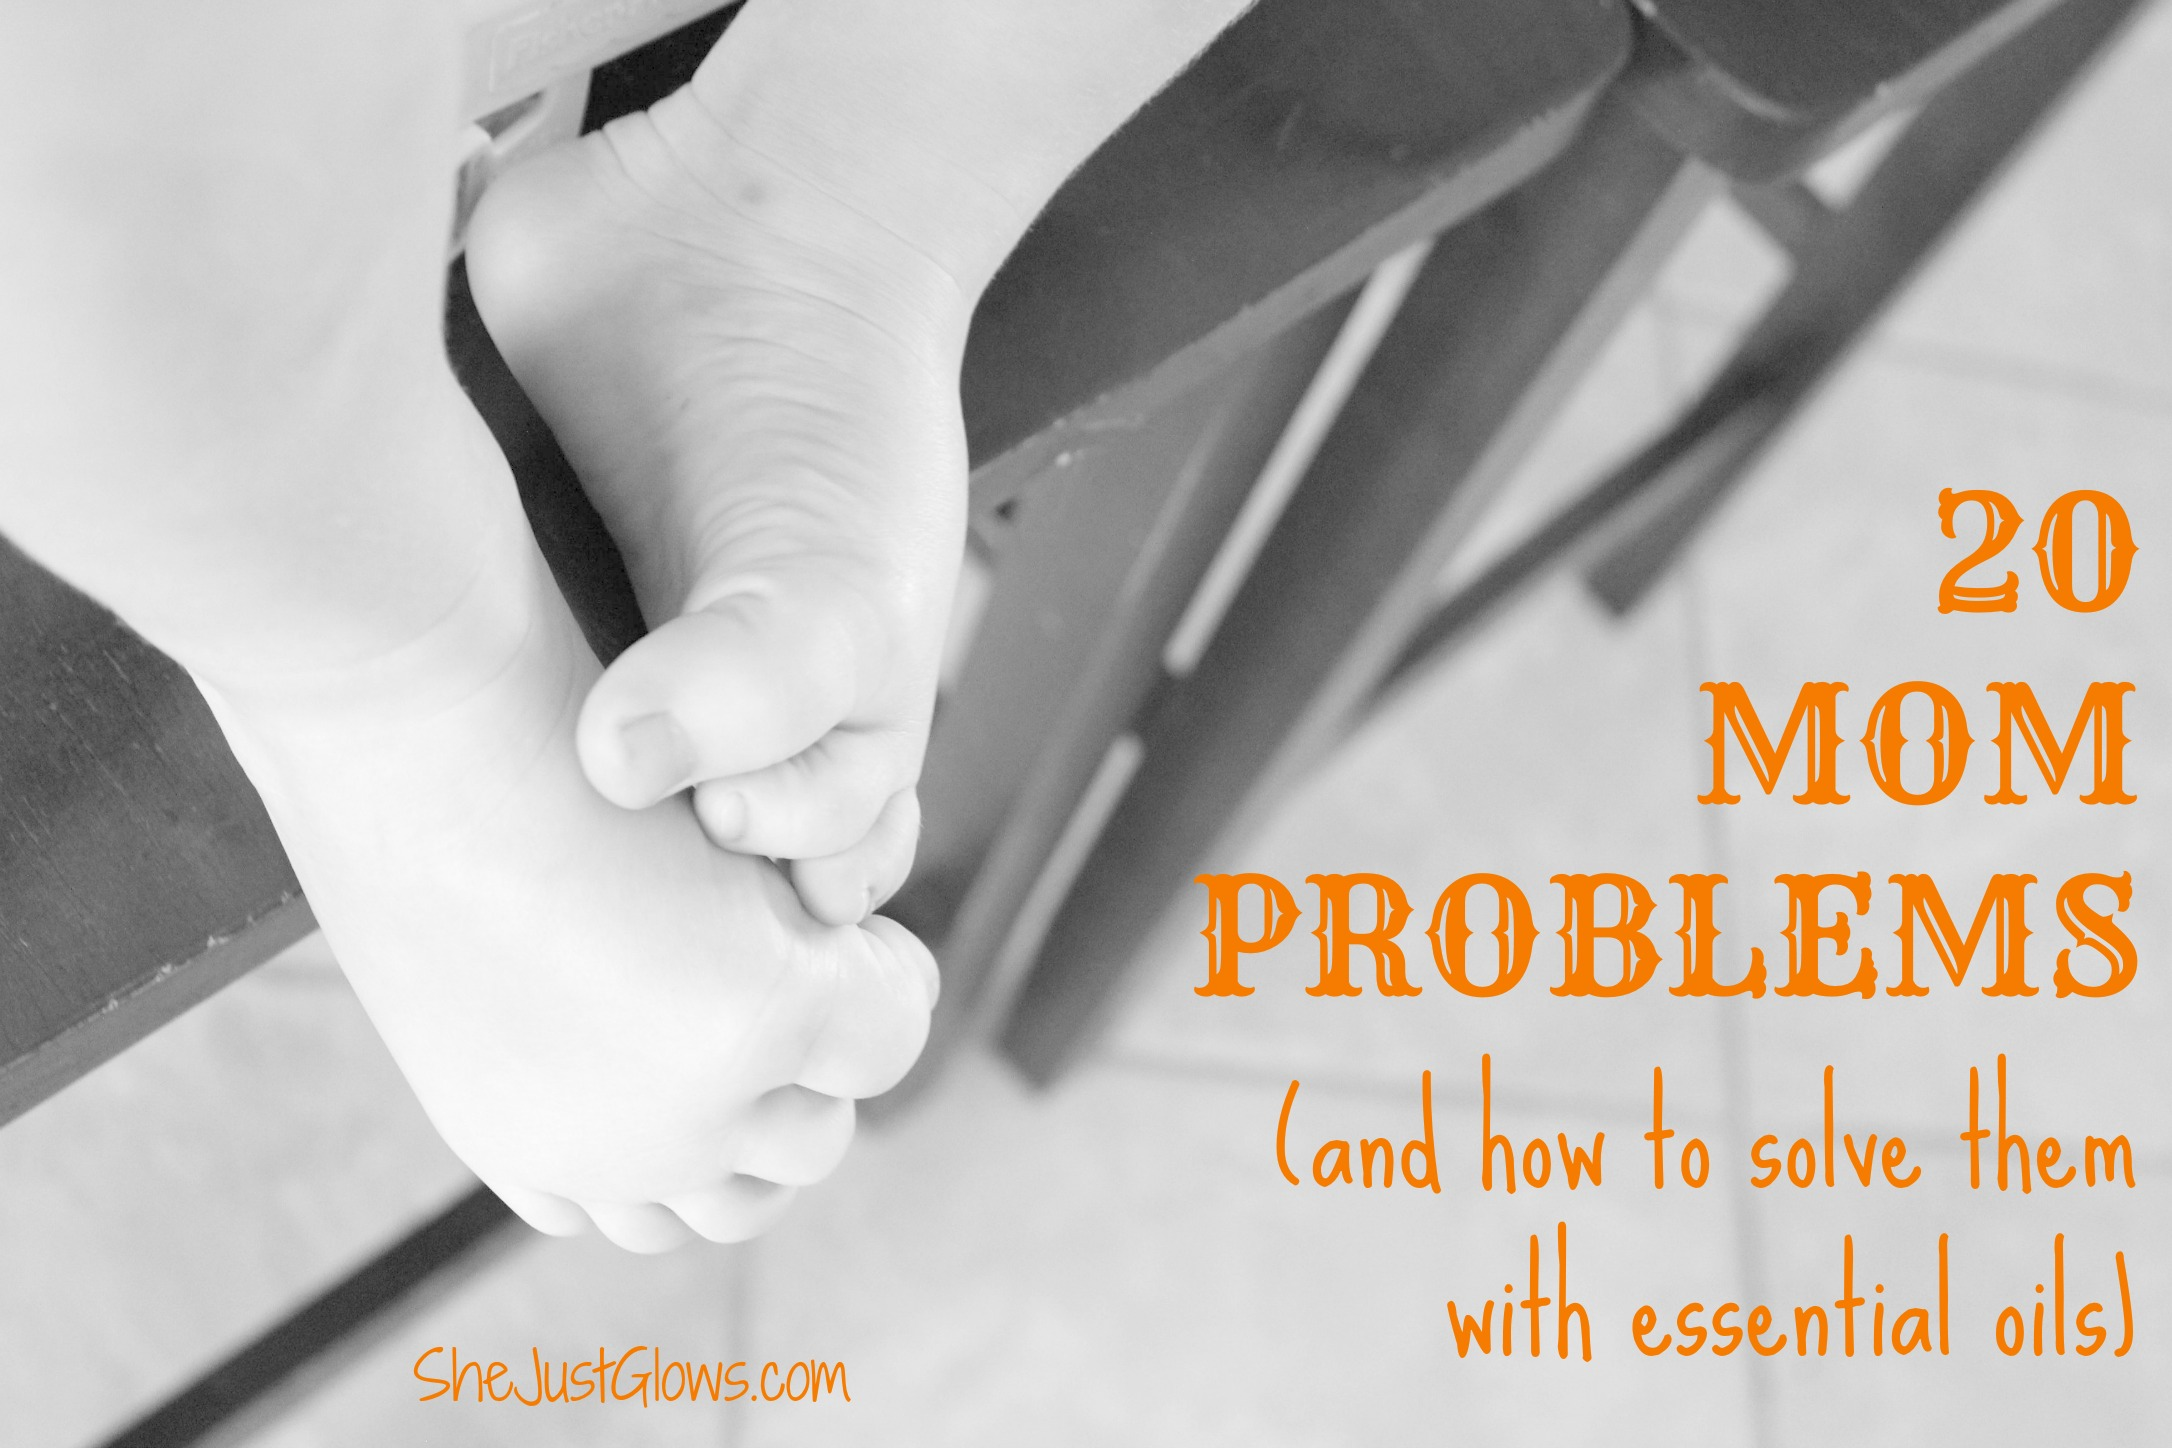 20 Mom Problems and How to Solve Them With Essential Oils SheJustGlows.com